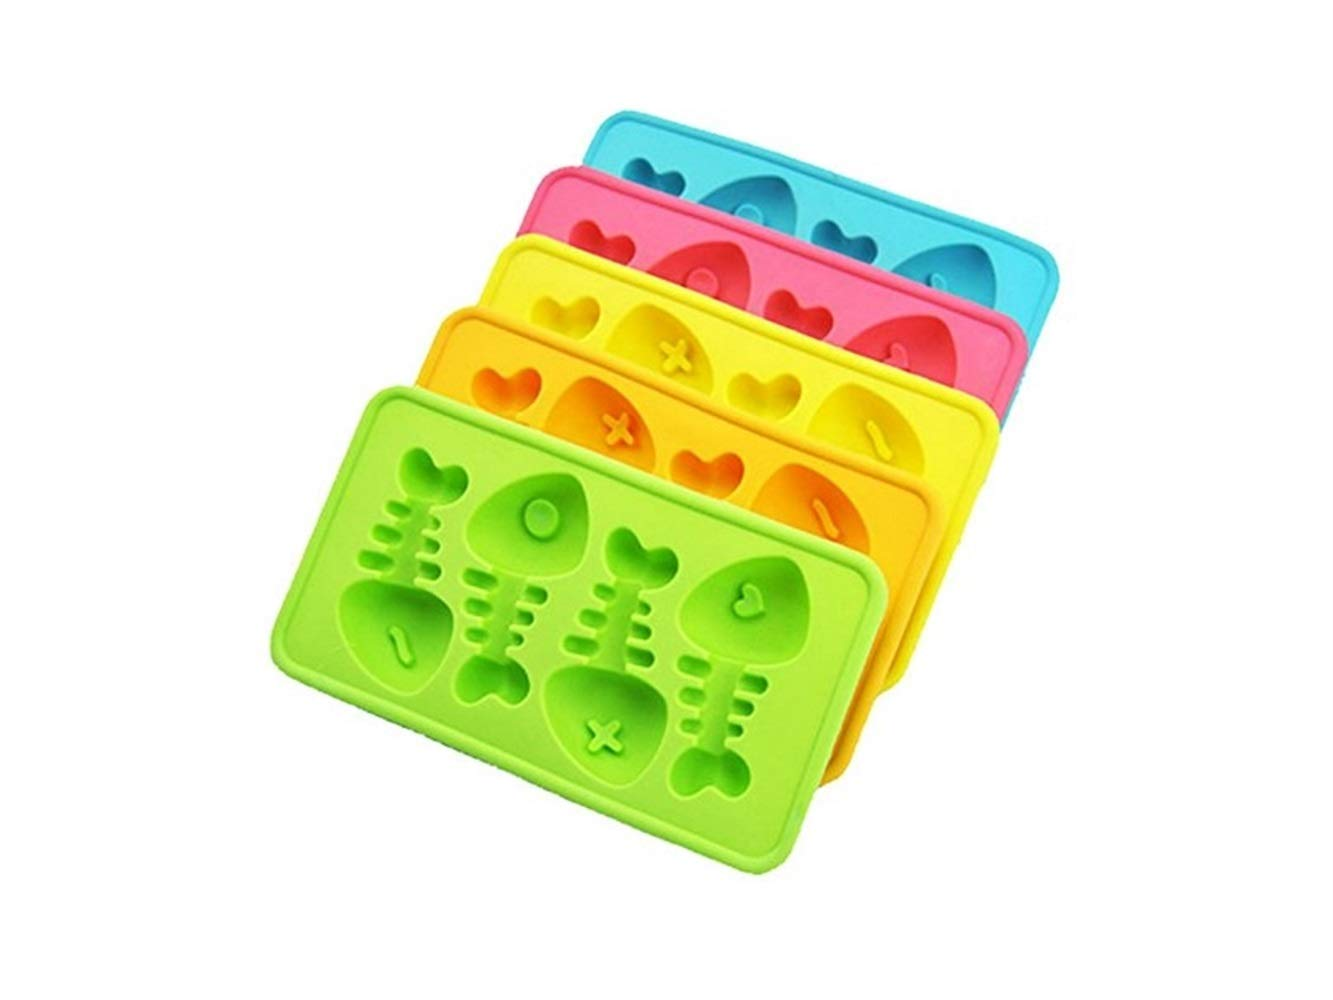 Gelaiken Fish Bone Ice Moulds Silicone Ice Trays Ice Cube Moulds for Cool Drinks Decoration(Random Color) Mold Ice Molds